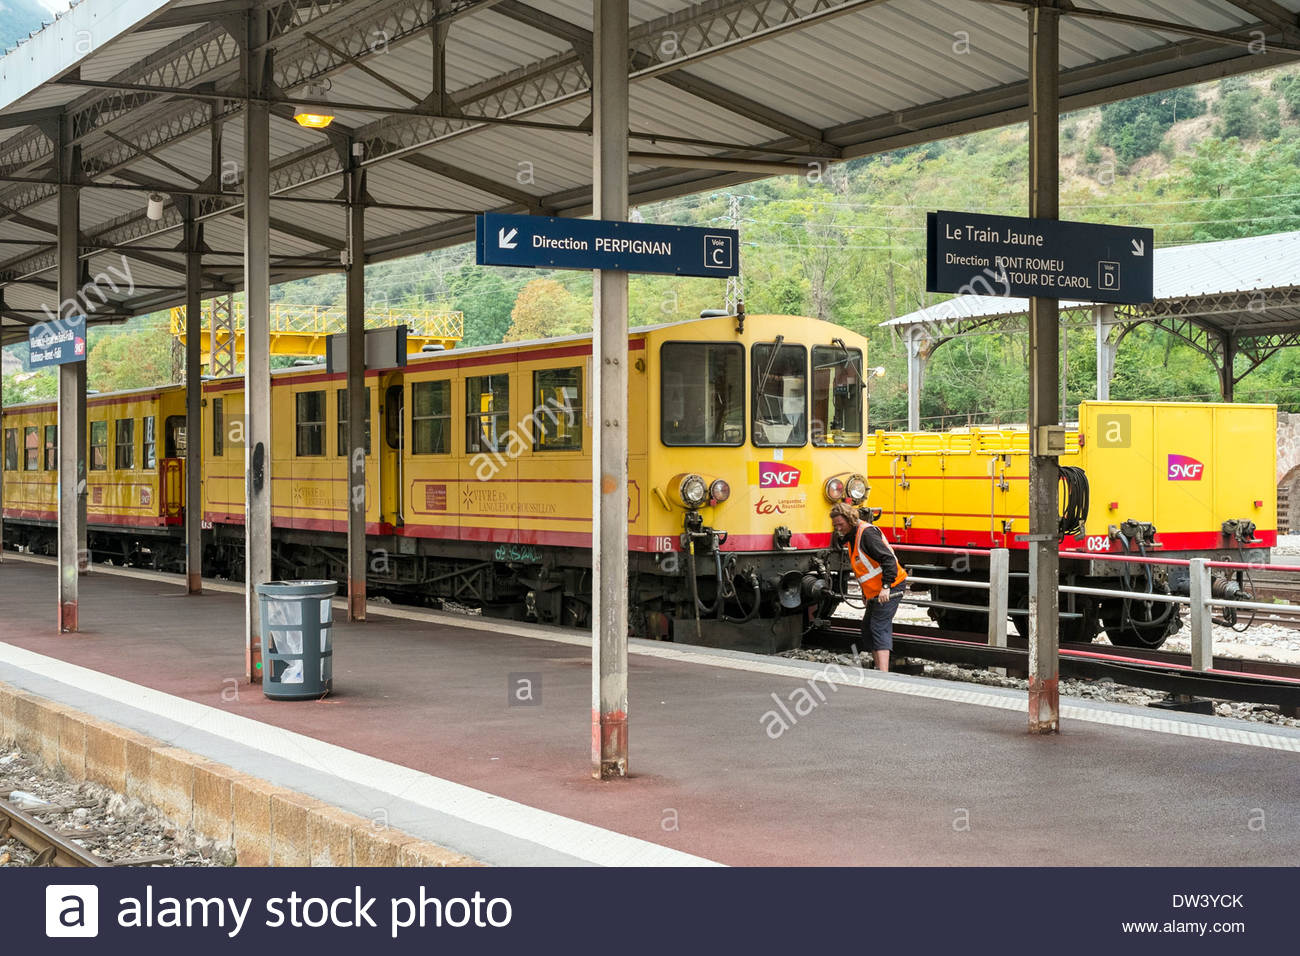 A worker inspects the Train Jaune (Yellow Train) at the station in Villefranche-de-Conflent, before departure. - Stock Image